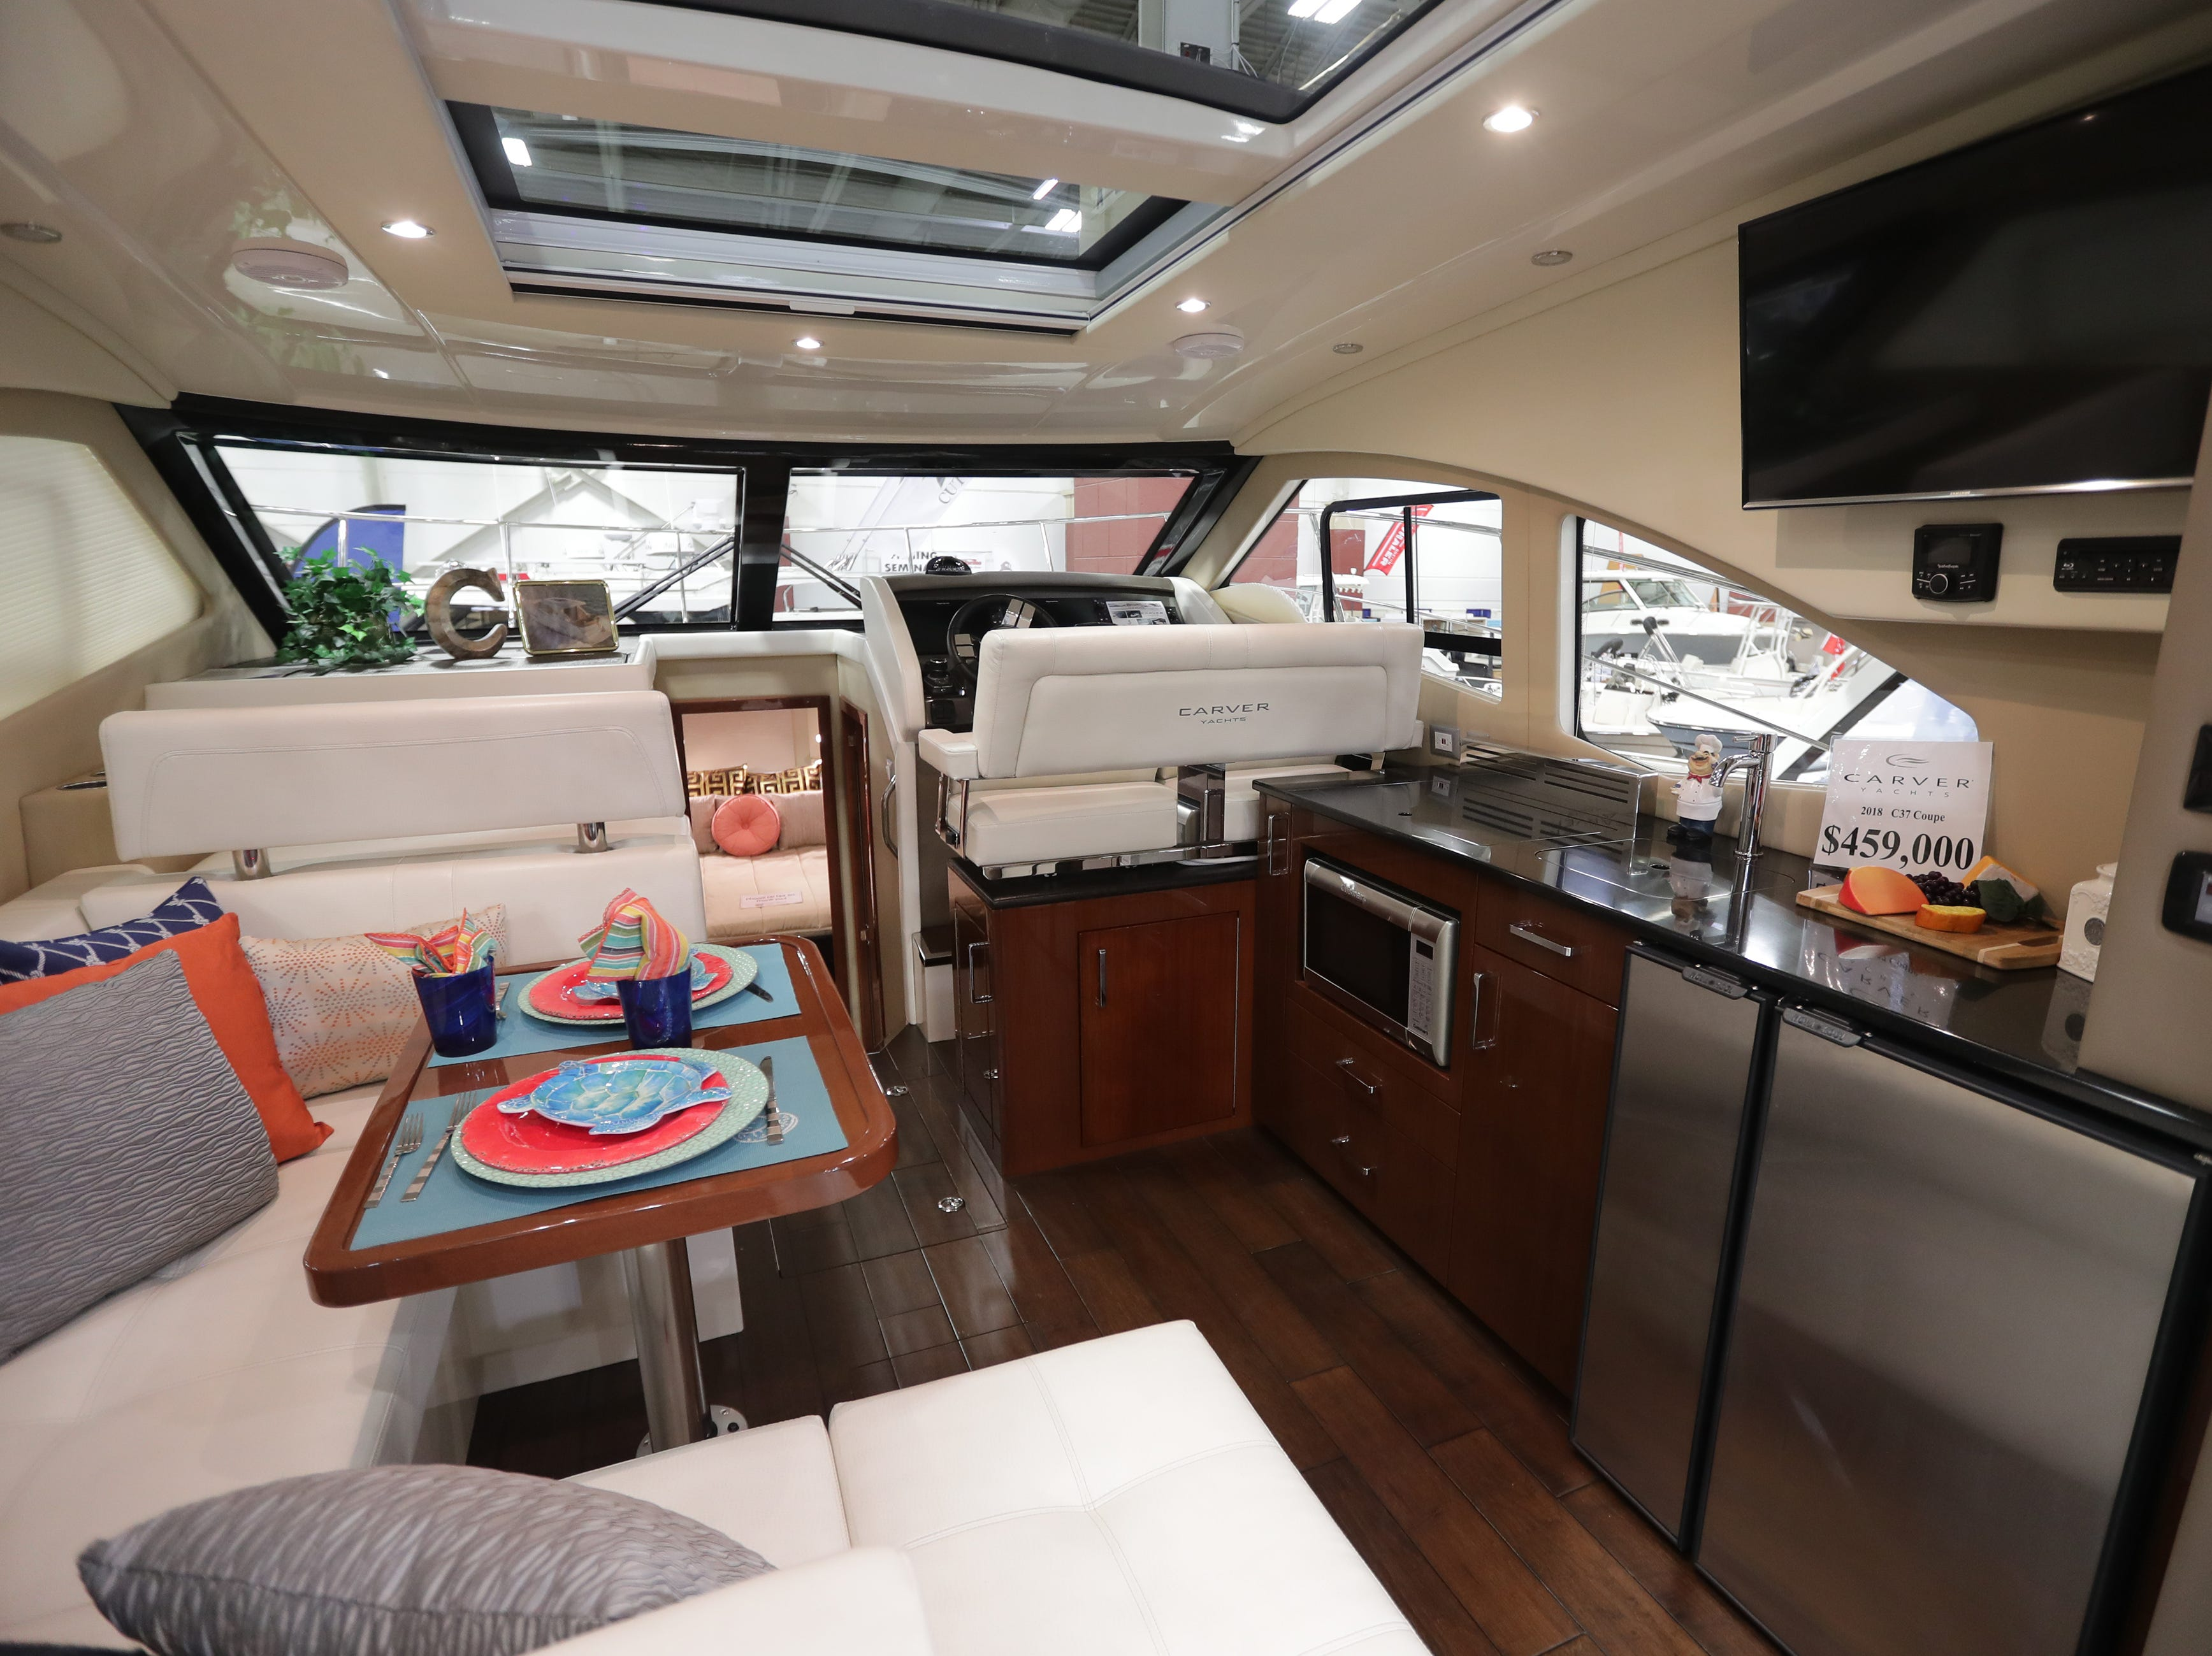 The galley and dining area of a 2019 37-foot Carver yacht, which lists for $459,000.